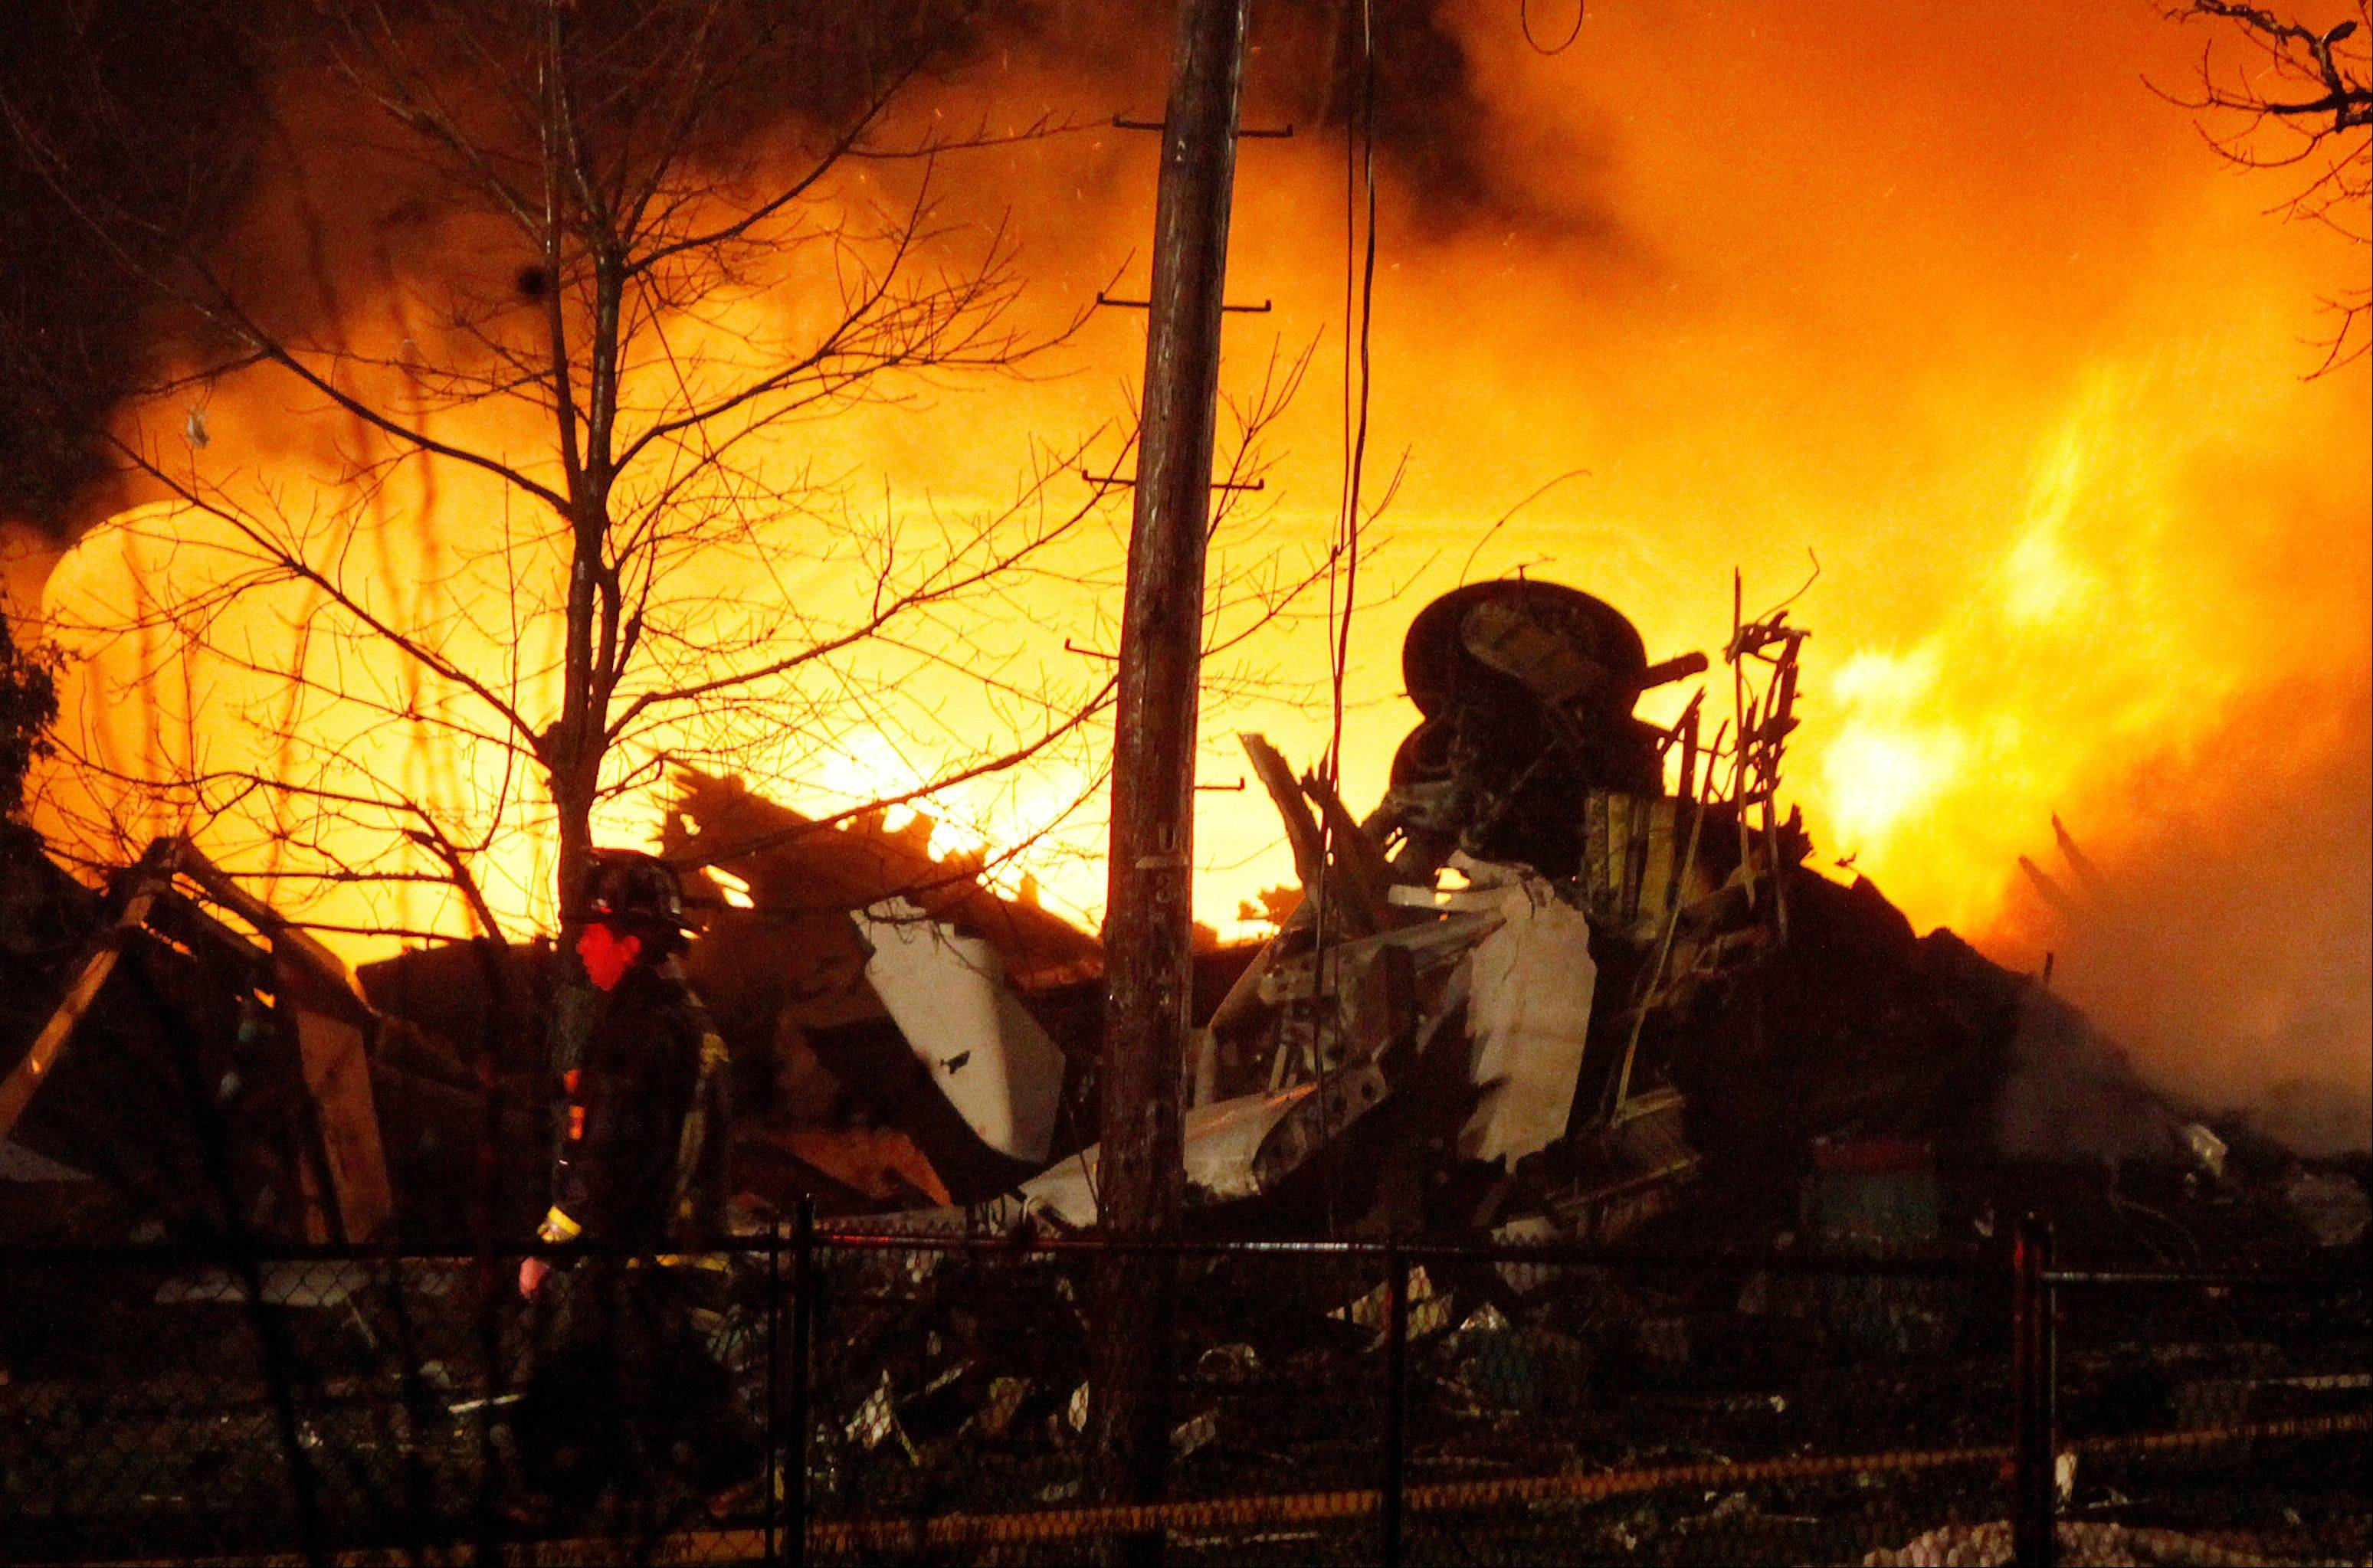 In this Feb. 12, 2009, file photo, a plane burns after it crashed into a house in Clarence Center, N.Y. The amount and type of flying experience first officers -- also known as co-pilots -- must have to qualify to fly for an airline will be significantly increased and expanded under new regulations announced Wednesday by the Federal Aviation Administration.